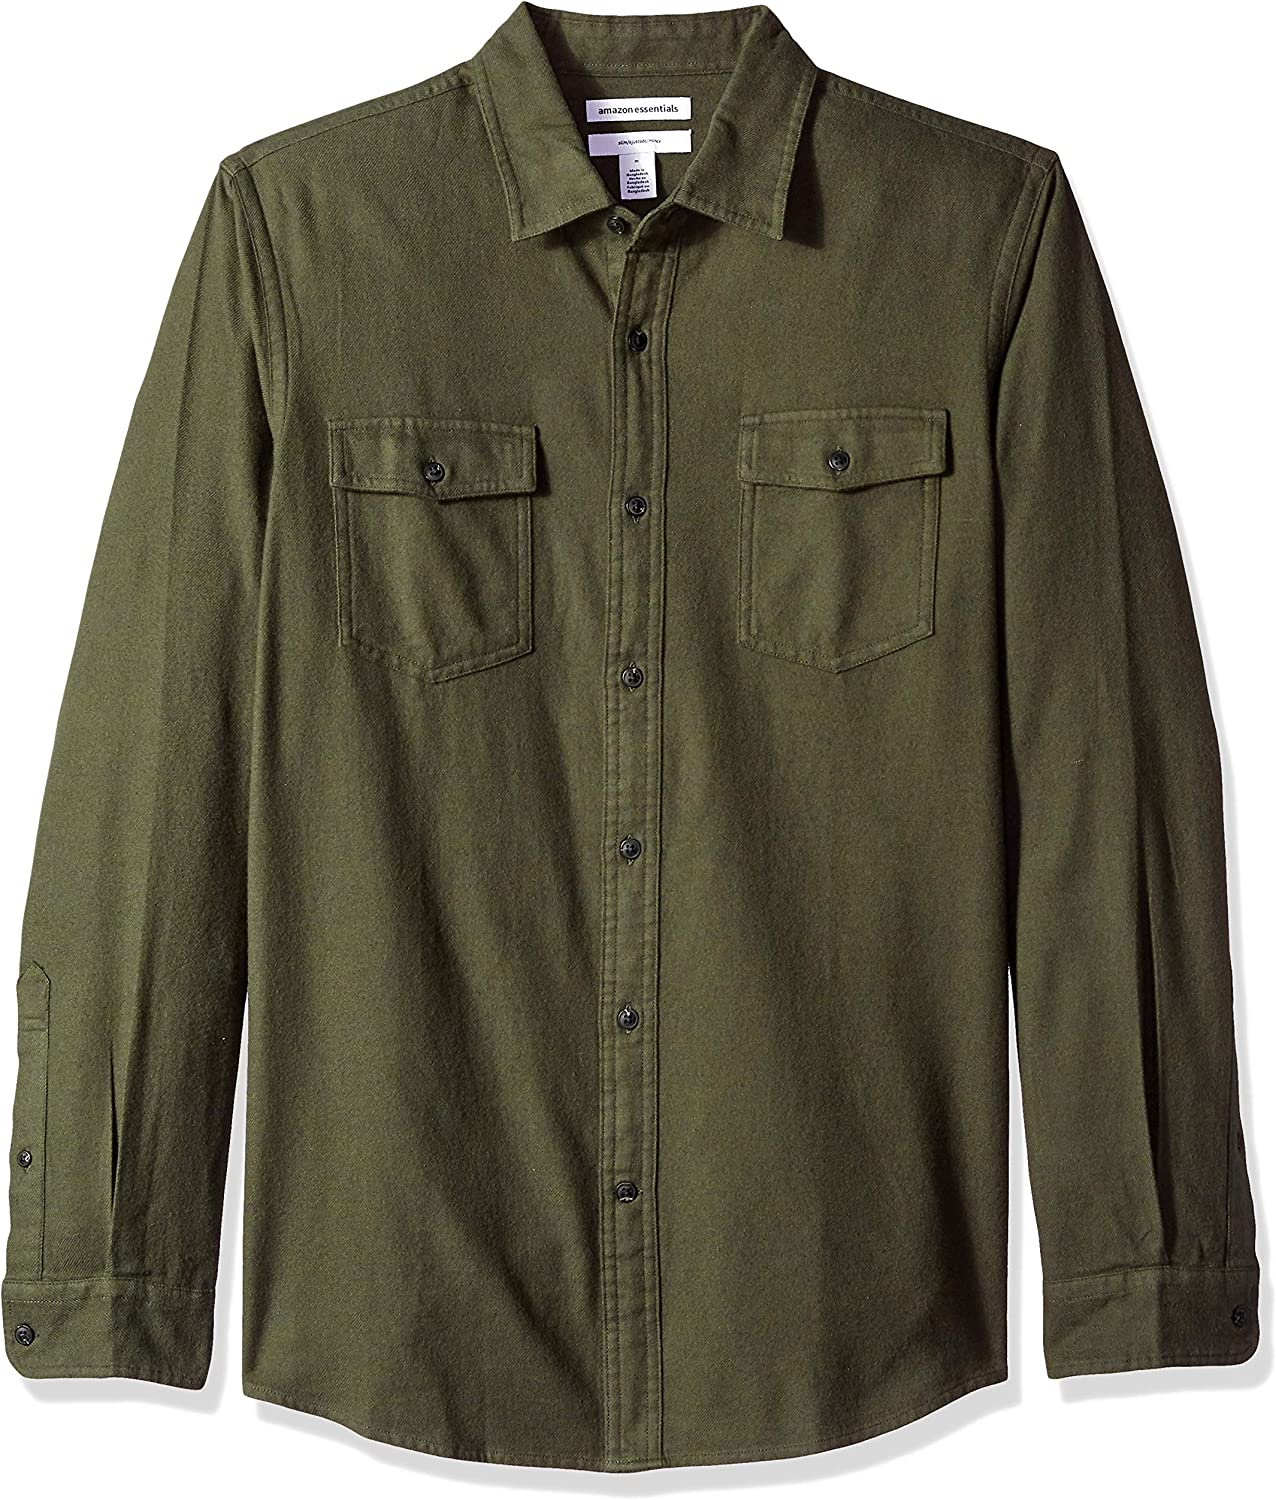 1940s Men's Shirts, Sweaters, Vests Amazon Essentials Mens Slim-Fit Long-Sleeve Two-Pocket Flannel Shirt $20.70 AT vintagedancer.com